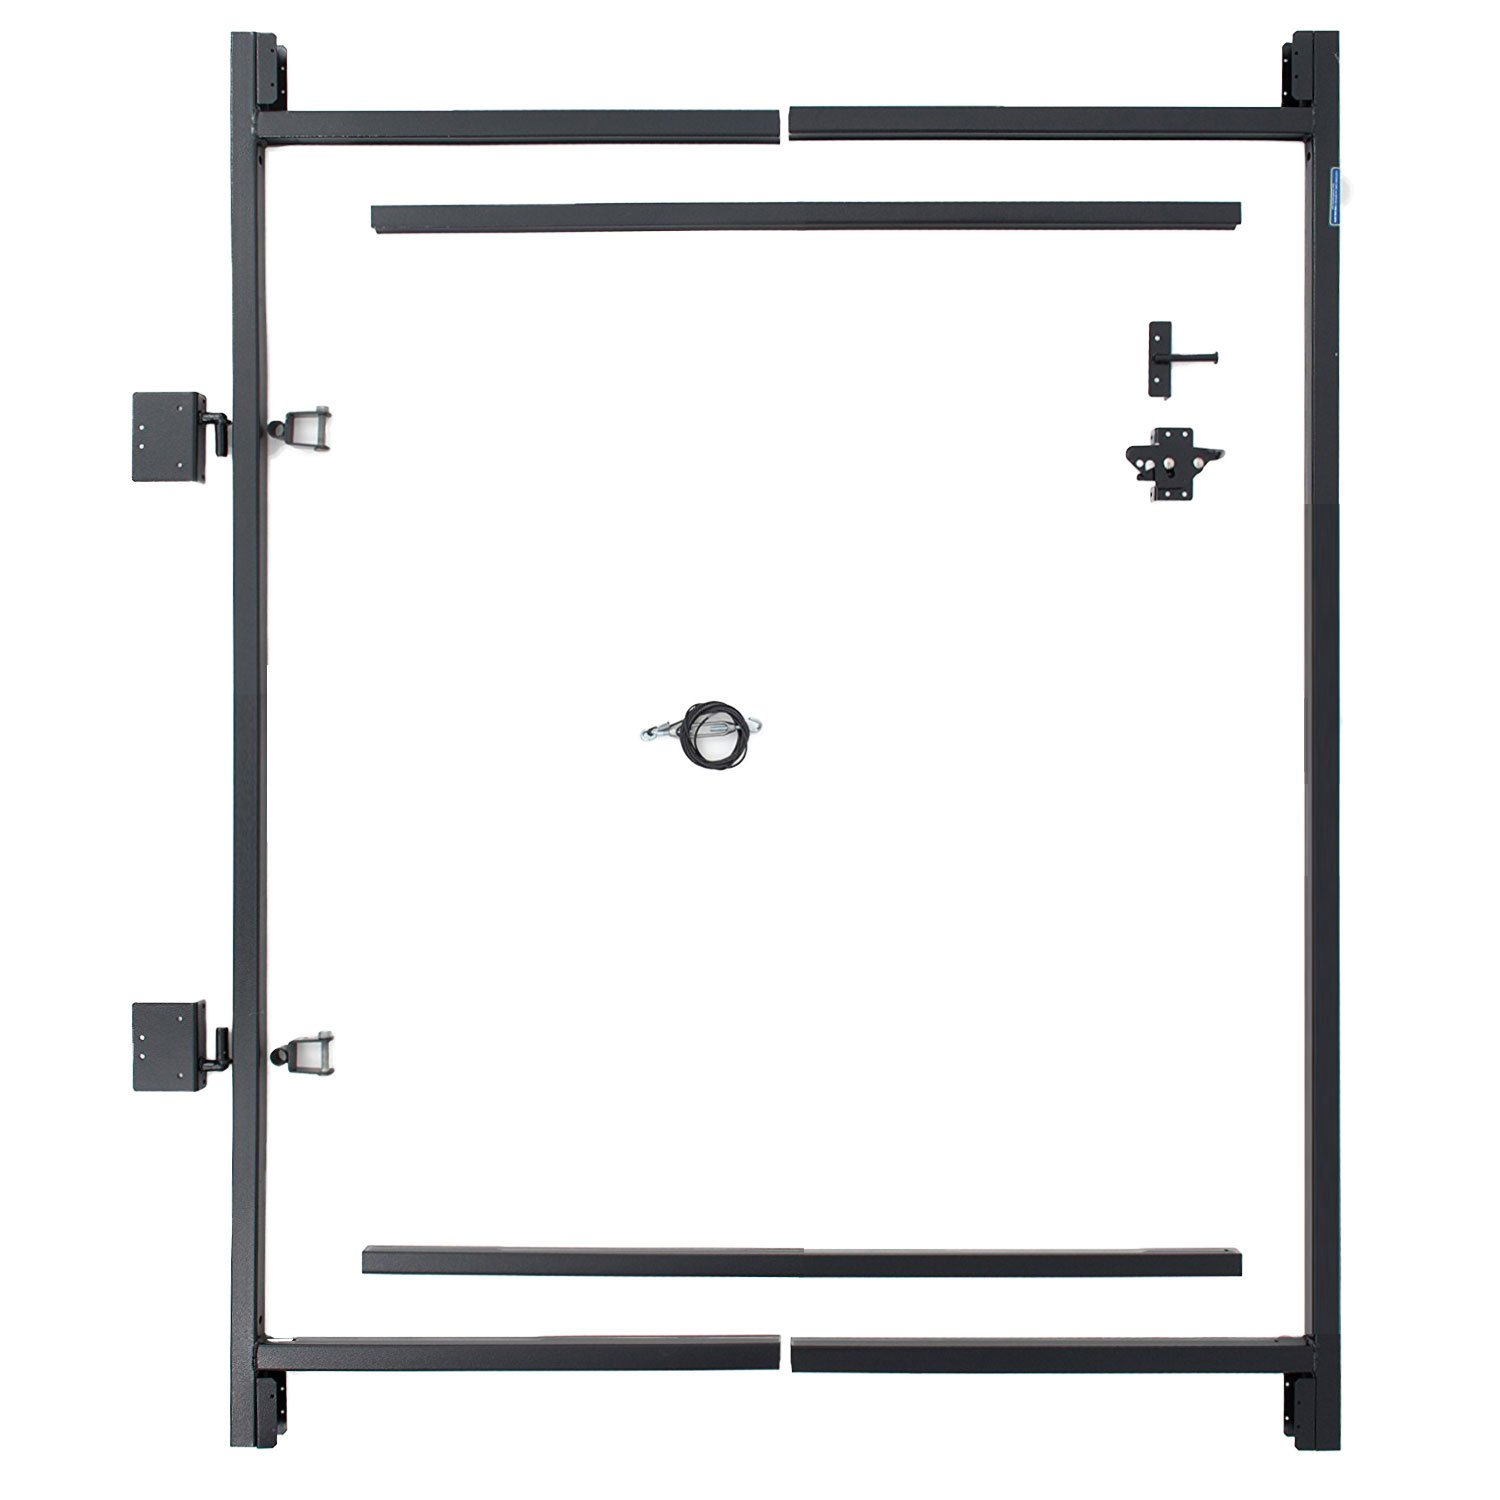 Adjust-A-Gate Steel Frame Gate Building Kit (36''-60'' wide openings up to 5' high fence) by Adjust-A-Gate